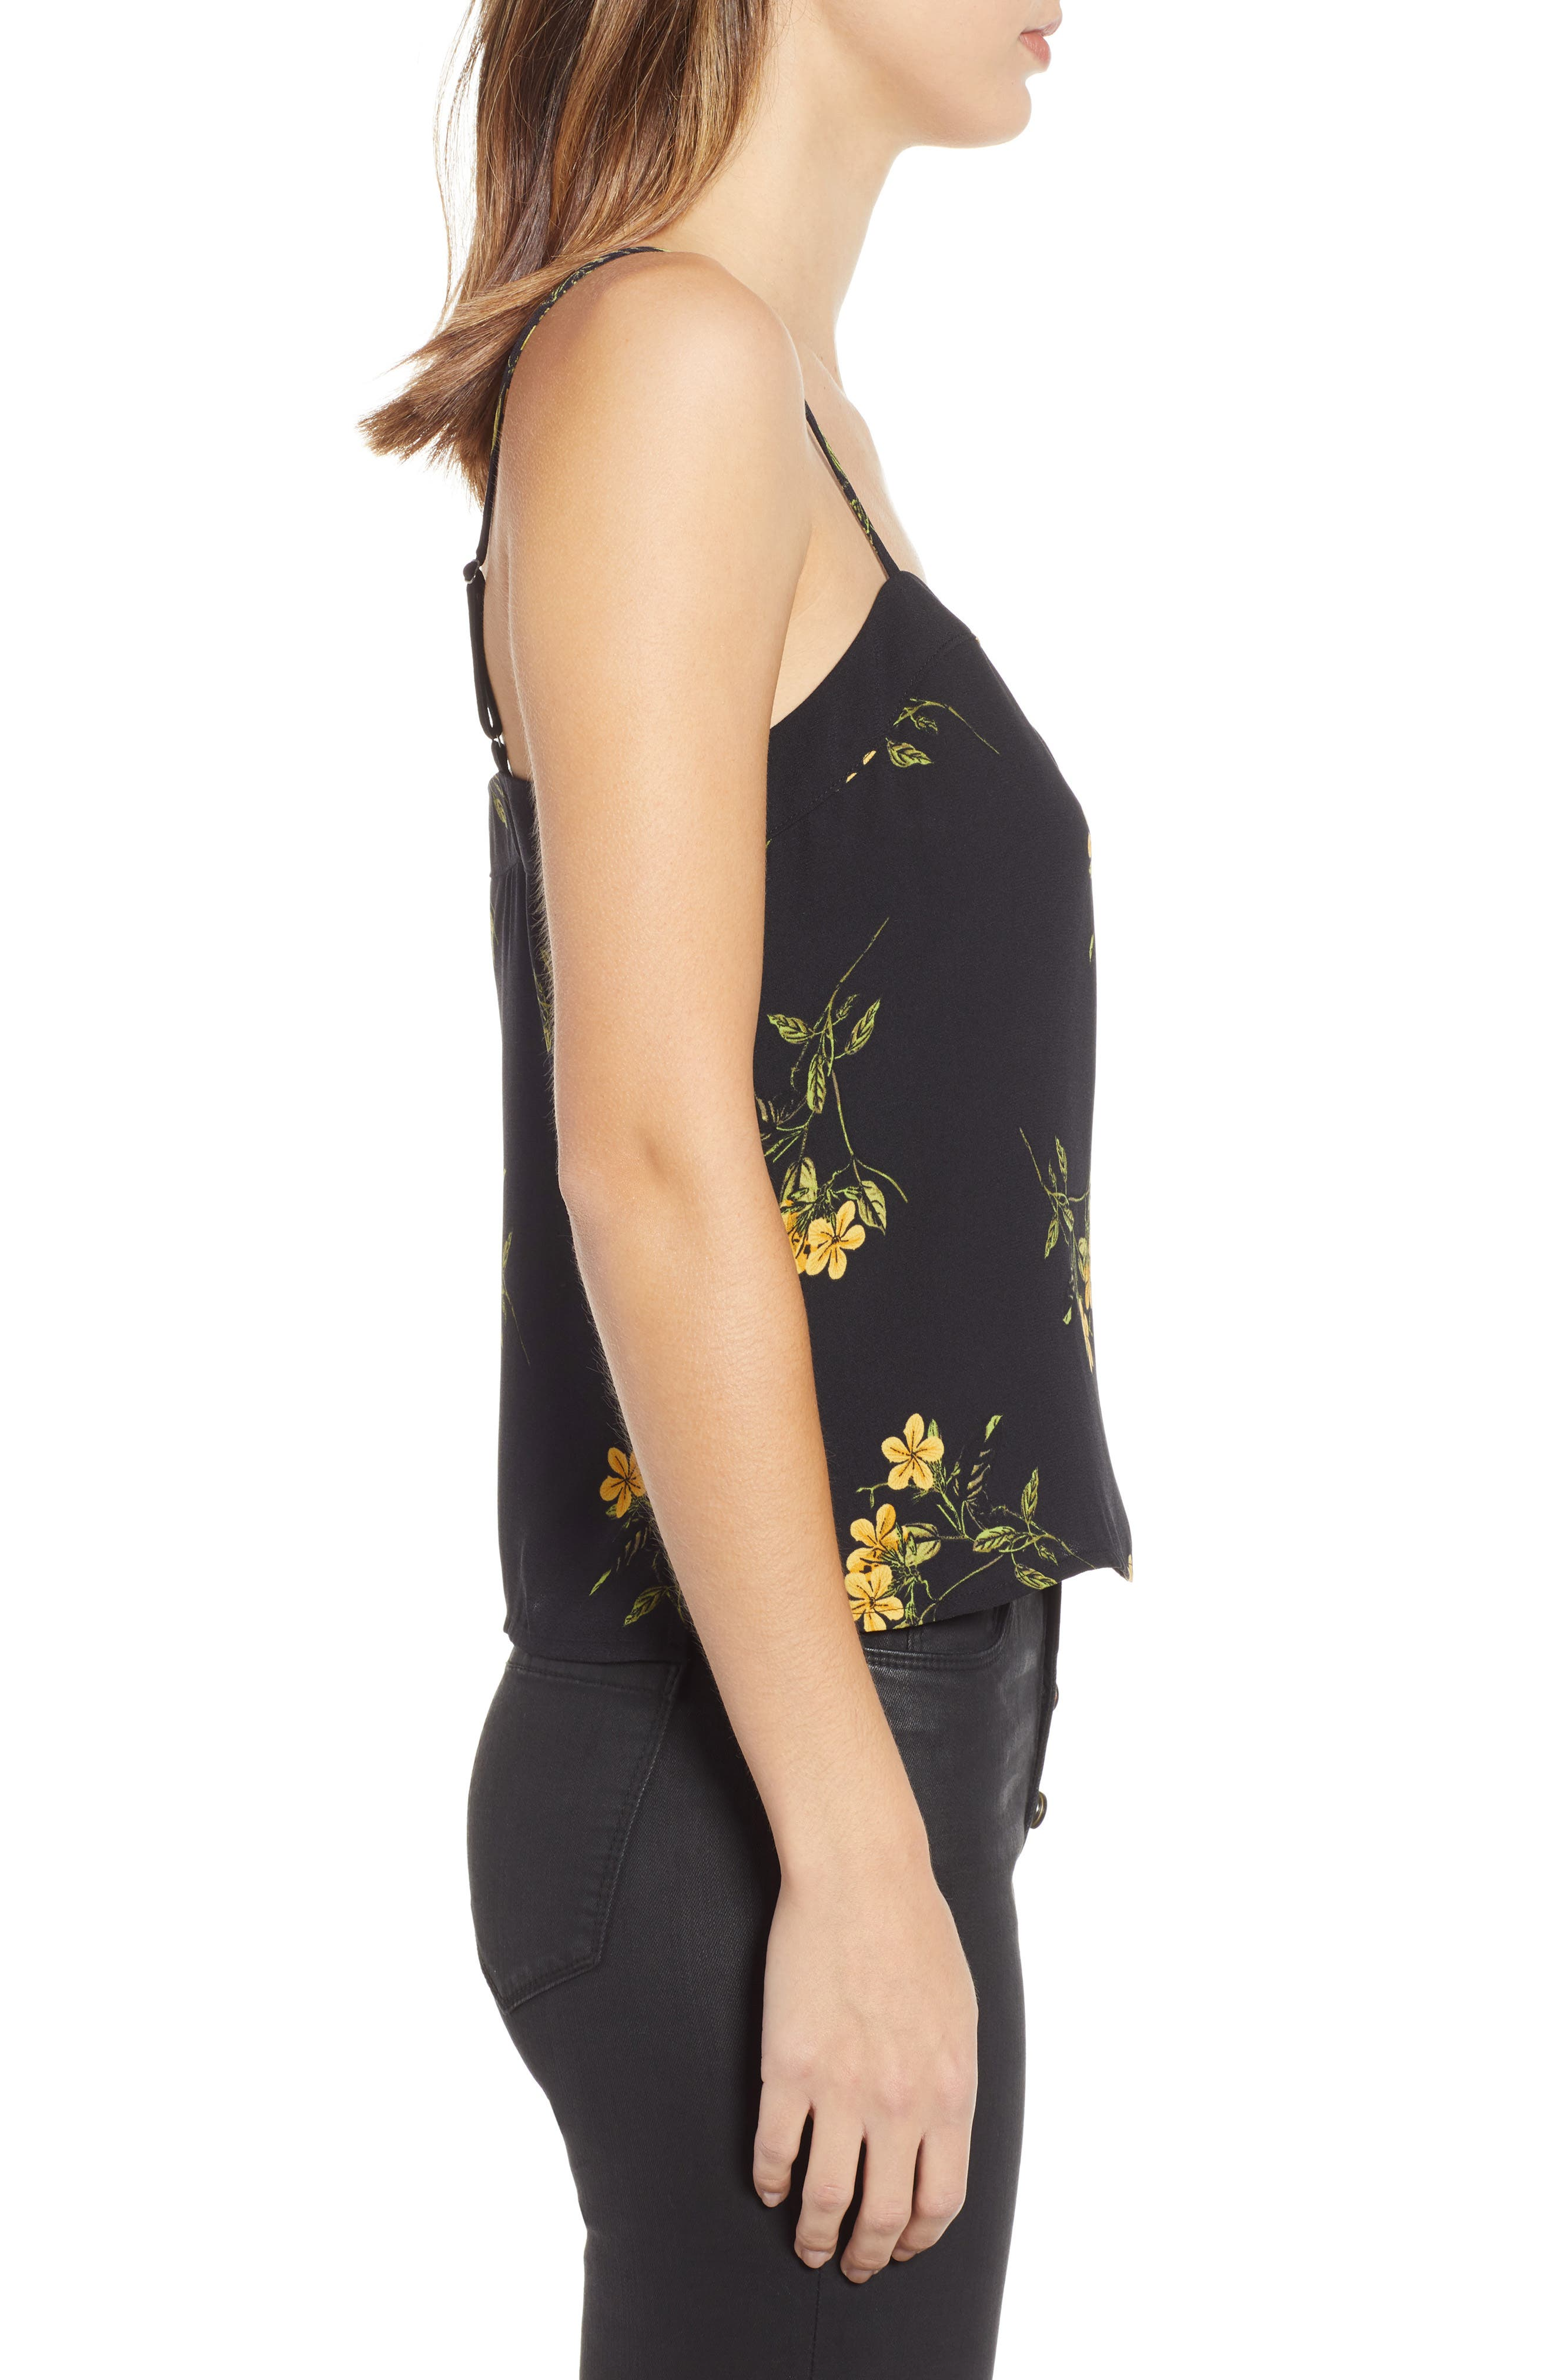 BP., Straight Neck Camisole Top, Alternate thumbnail 4, color, BLACK BIOTONIC FLORAL